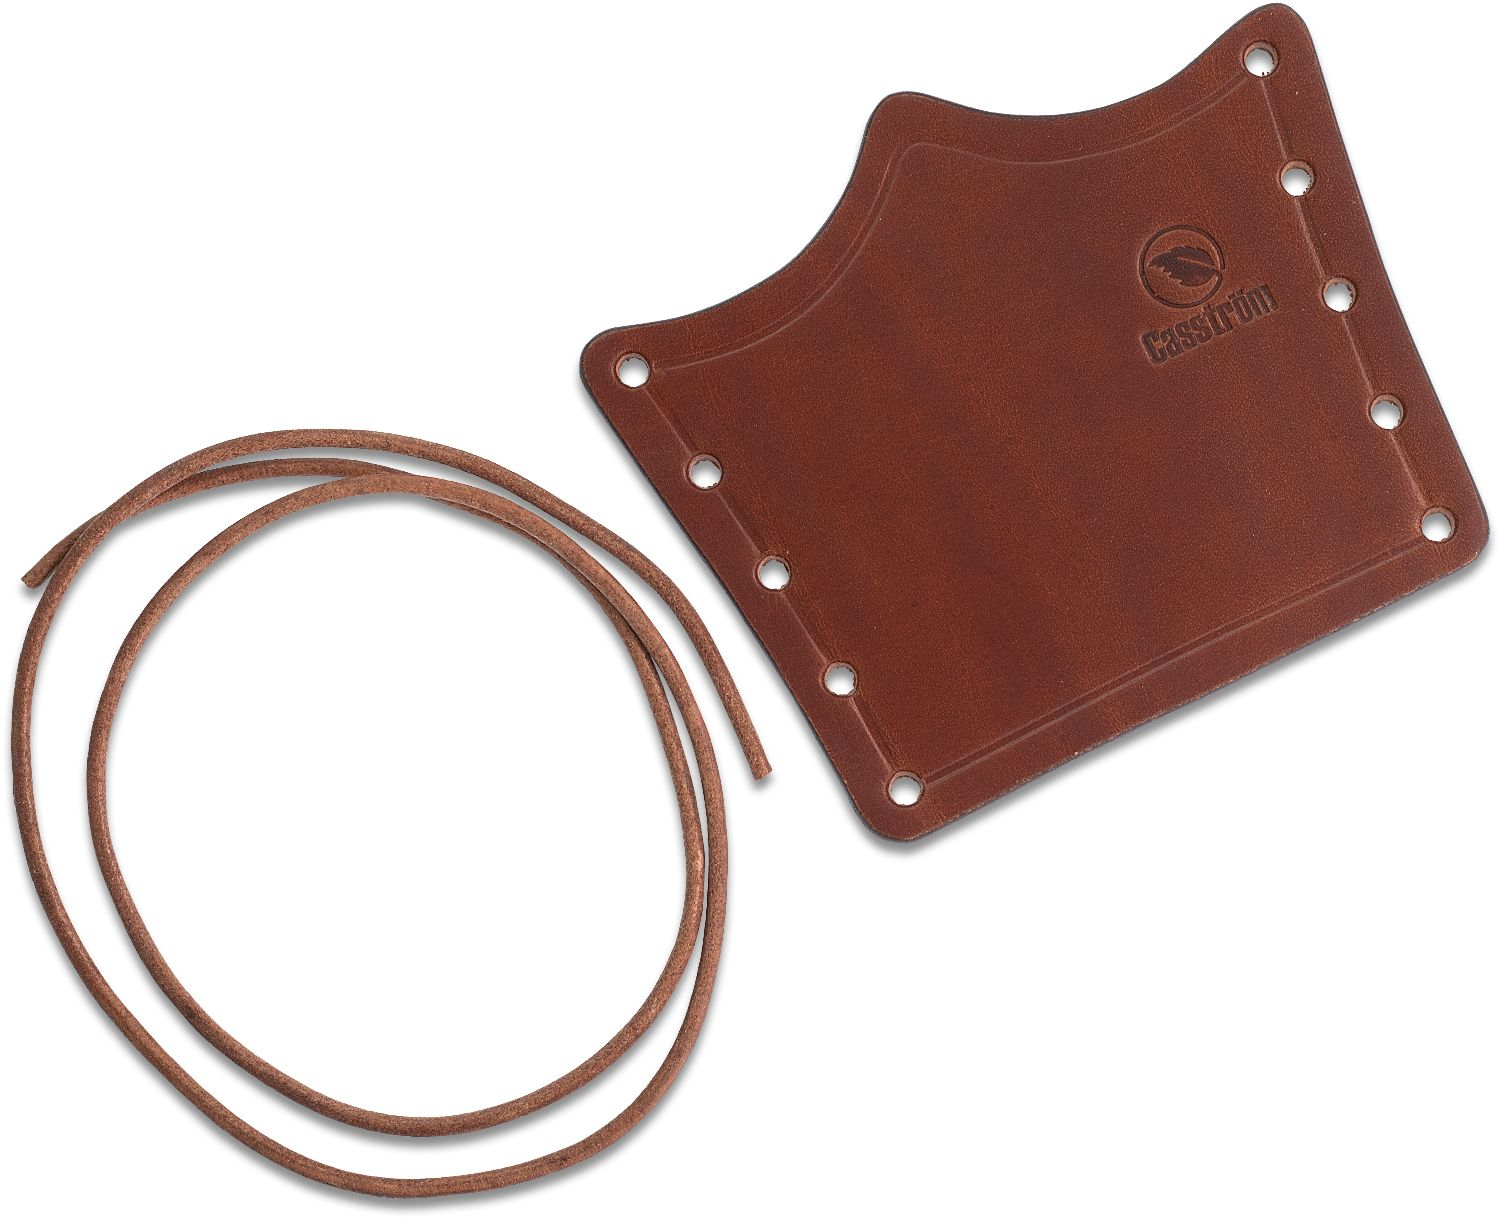 Casstrom Sweden Overstrike Axe Collar, Cognac Brown